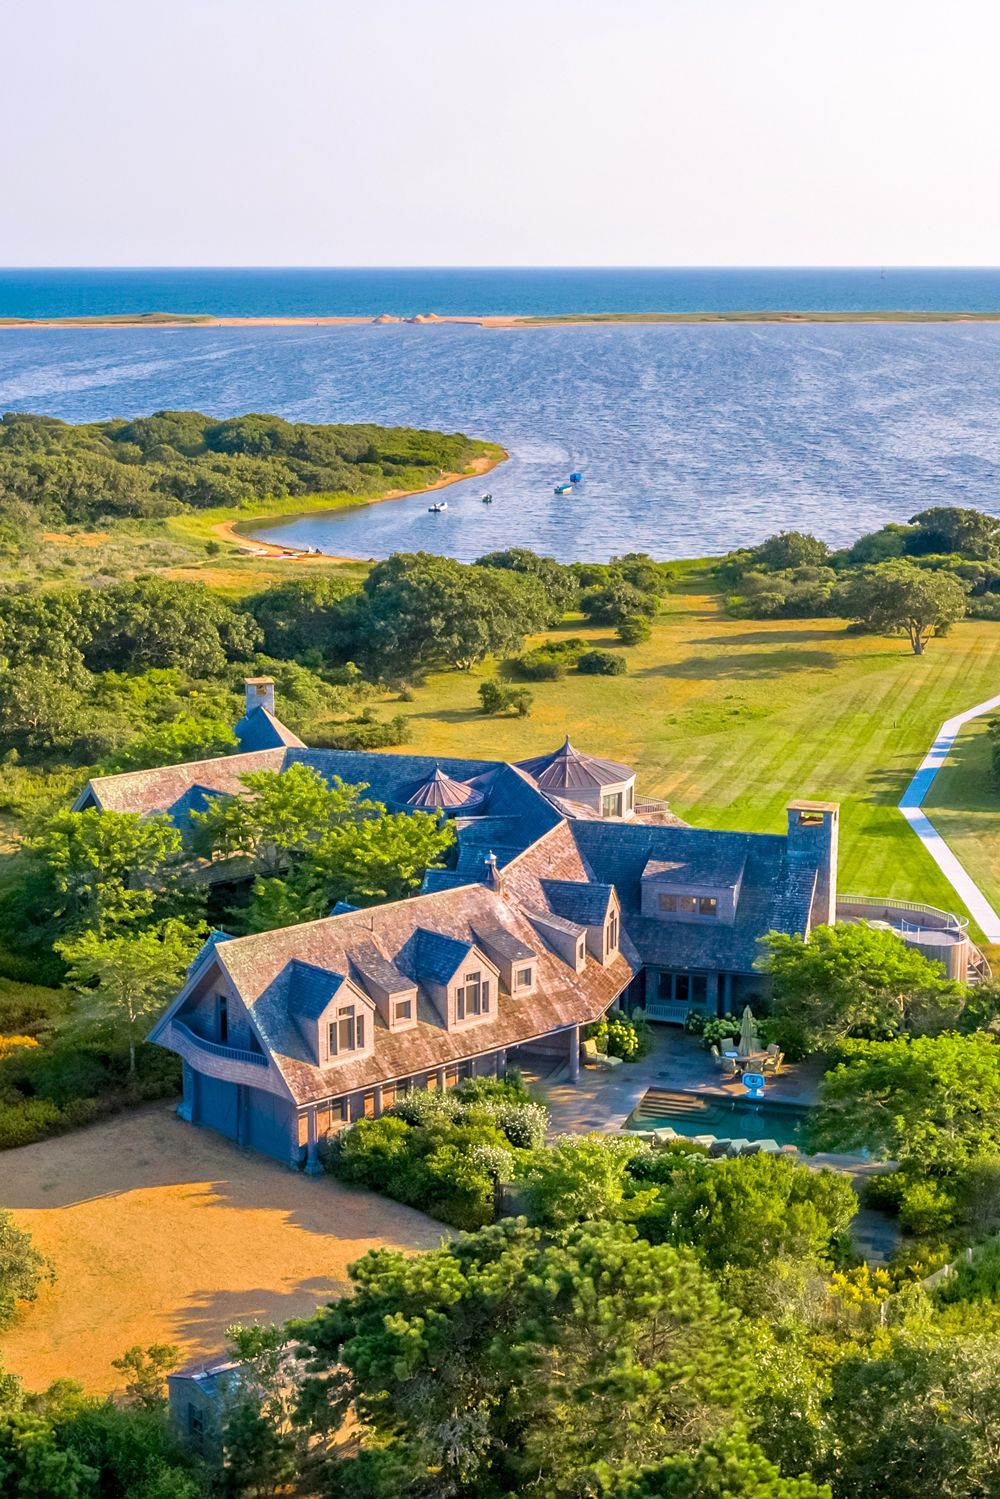 Take a peek inside these jaw-dropping celebrity homes